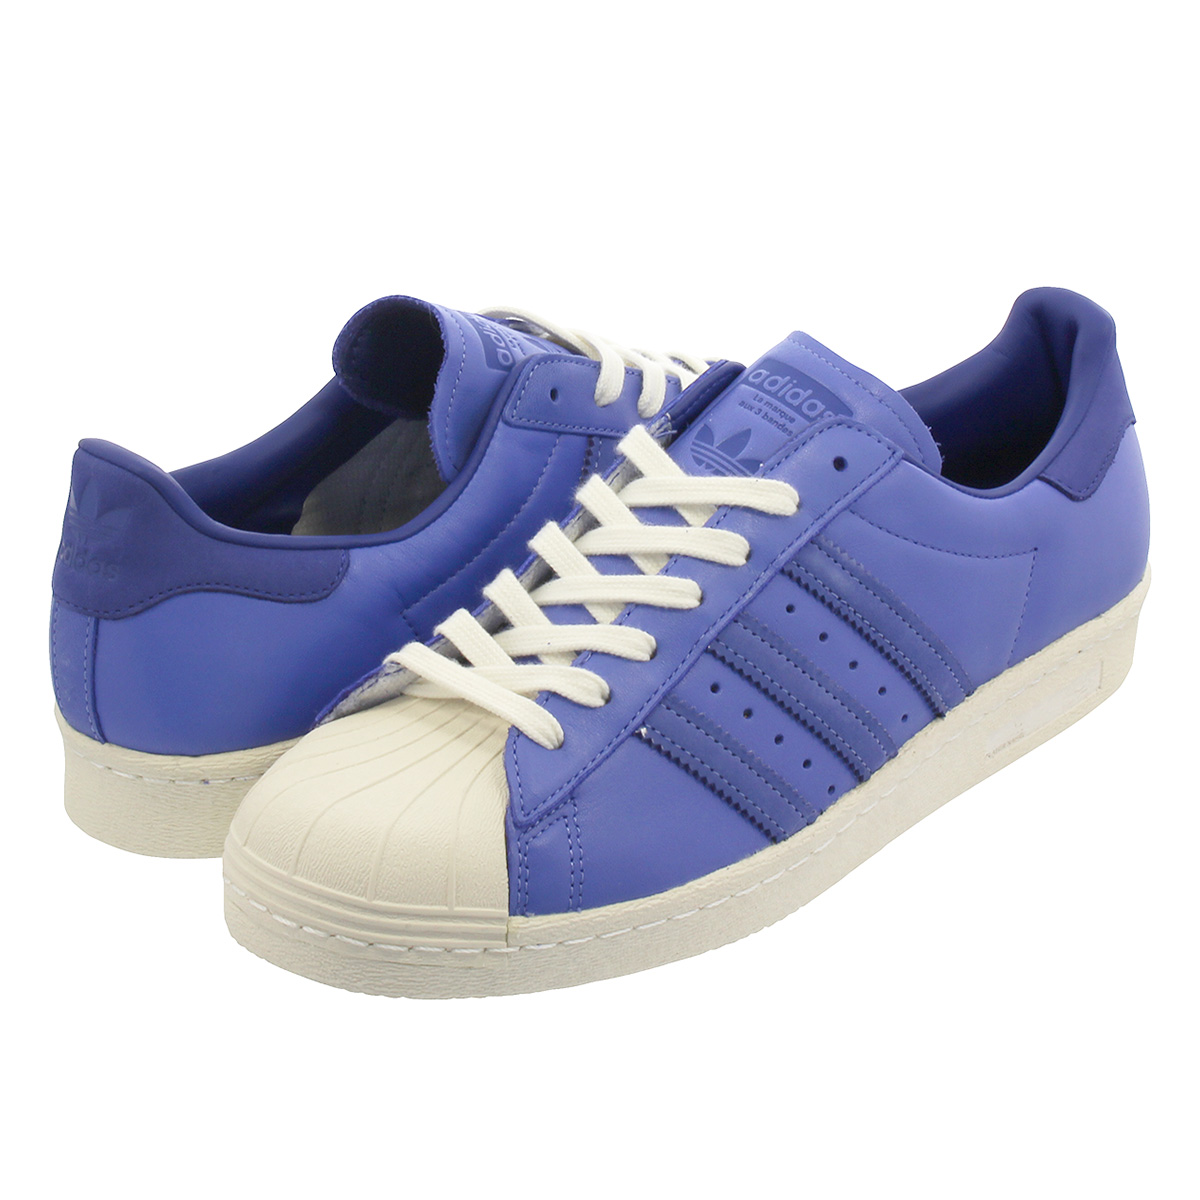 photos officielles 5dc26 03aed adidas SUPERSTAR 80s Adidas superstar 80s REAL LILAC/ACTIVE BLUE/OFF WHITE  bd7367